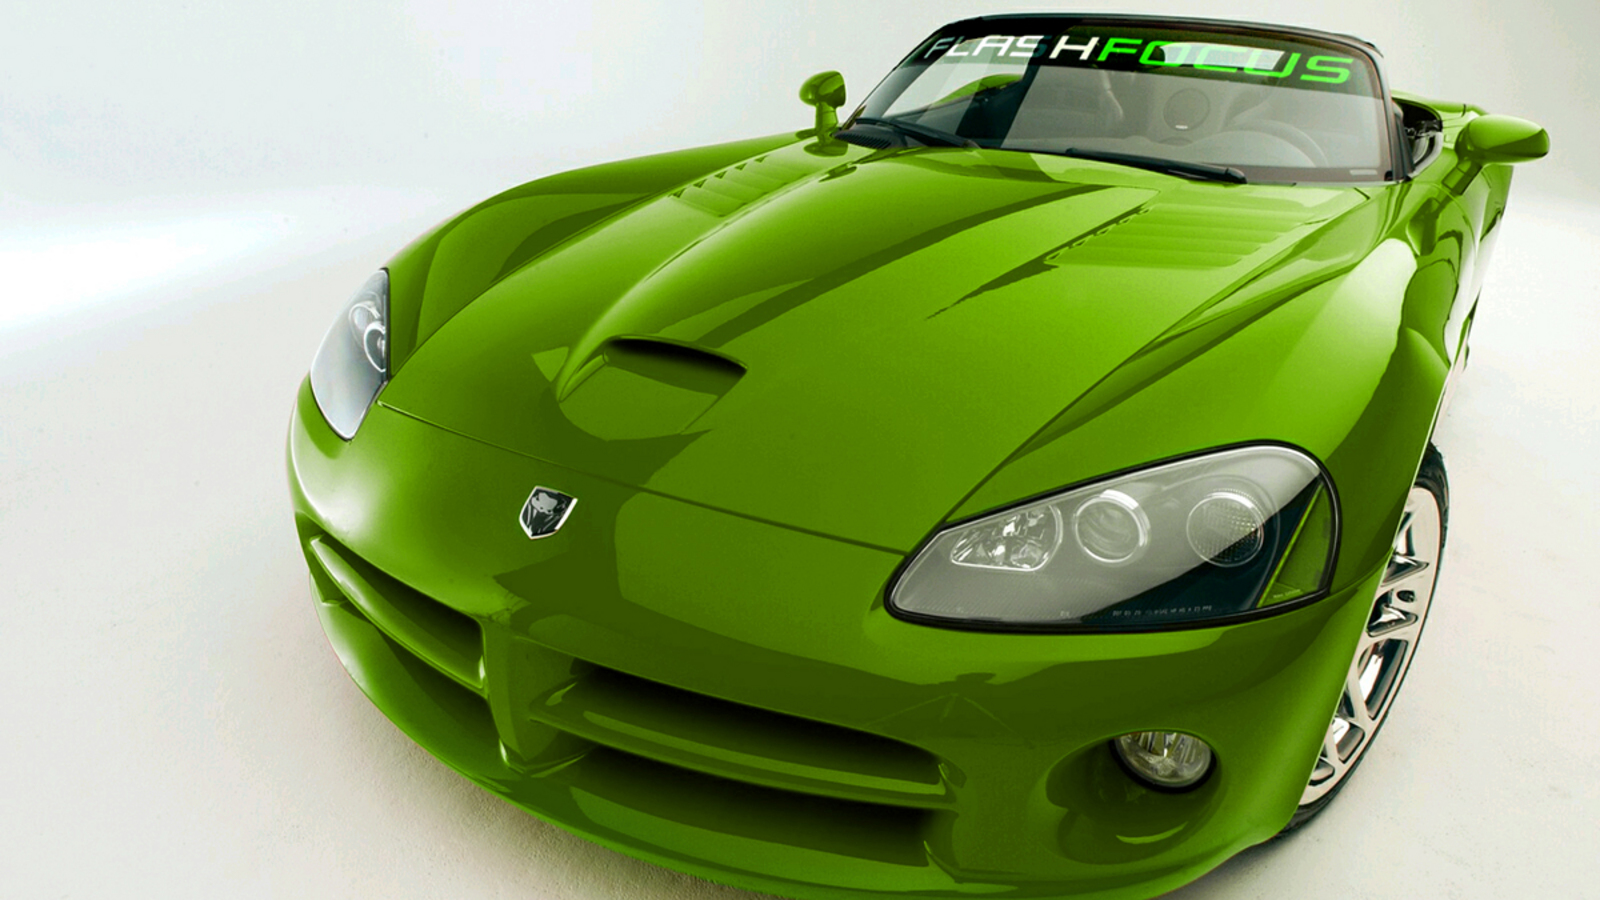 1996 Dodge Viper 2 Dr GTS Coupe picture, exterior